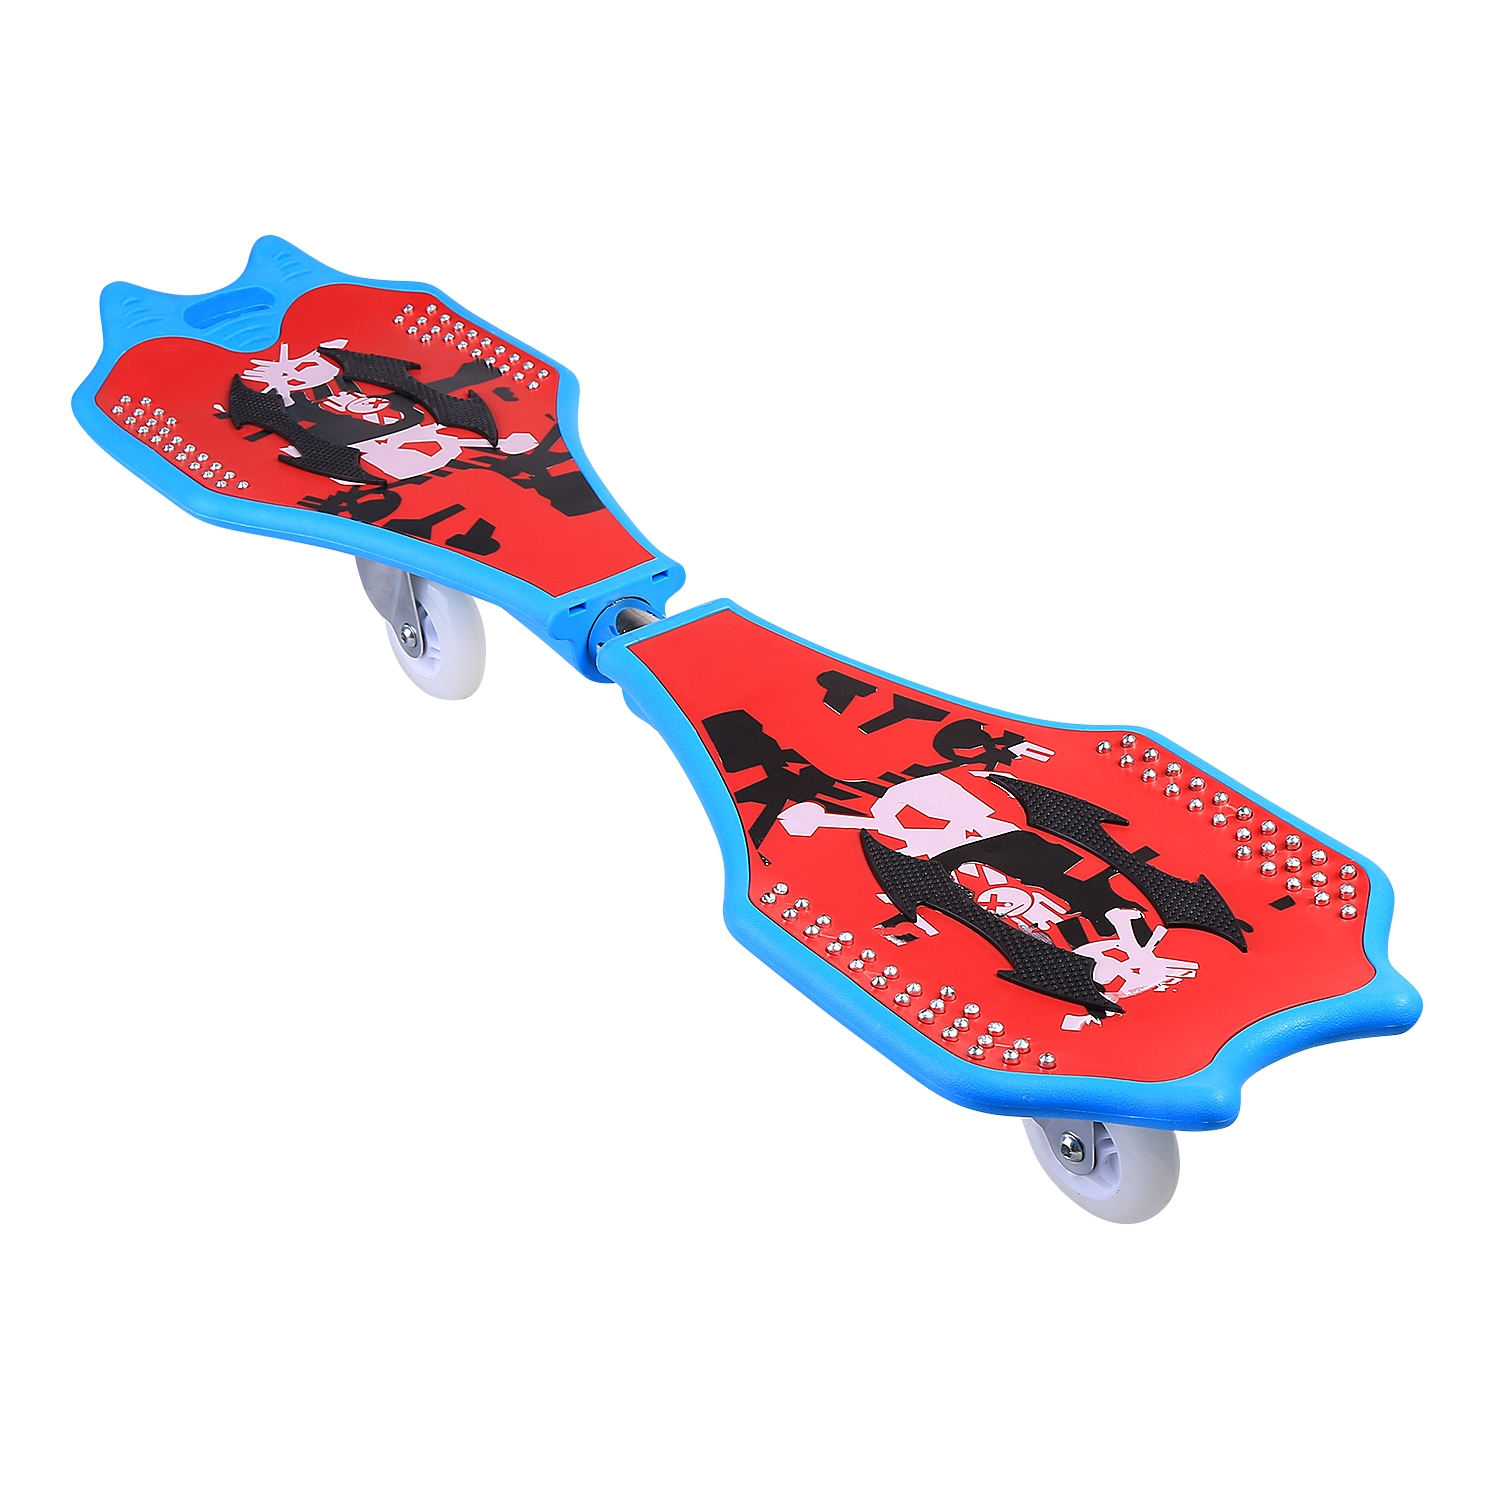 Child Kids Caster Board With Light Up Wheels and Carrying Bag HITC by